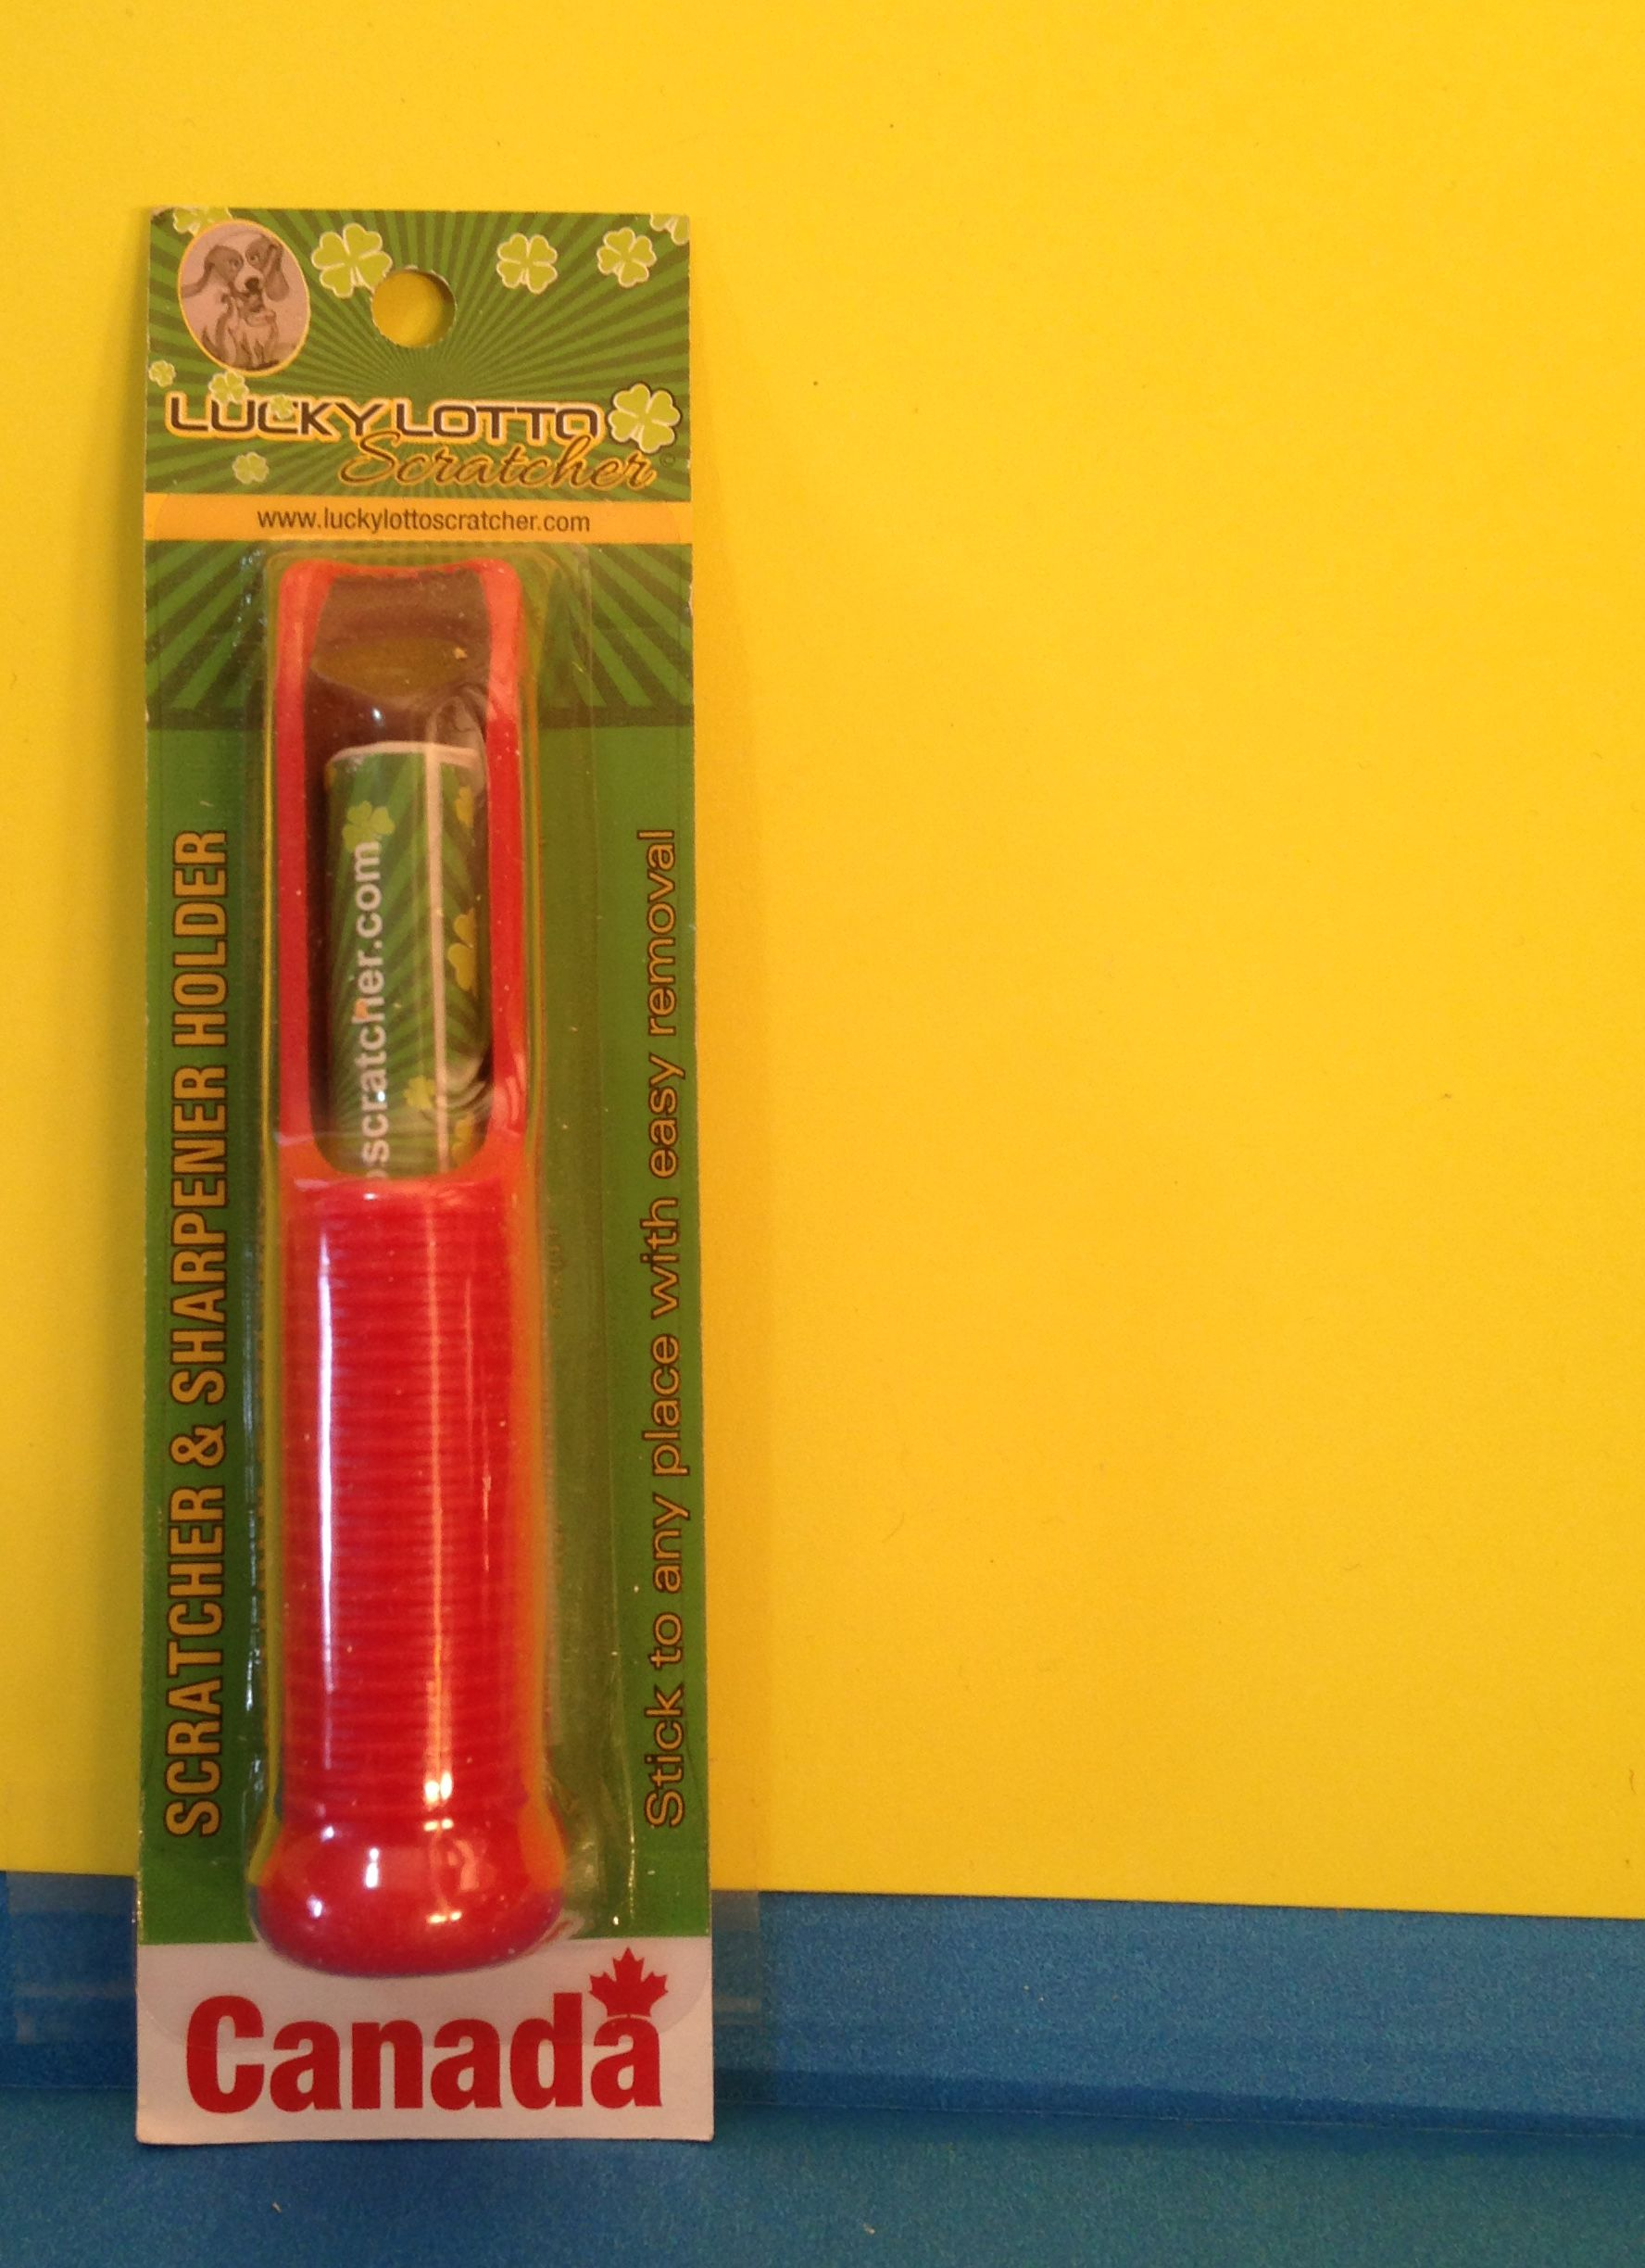 You can get one lucky Lotto Scratcher and a sharpener for